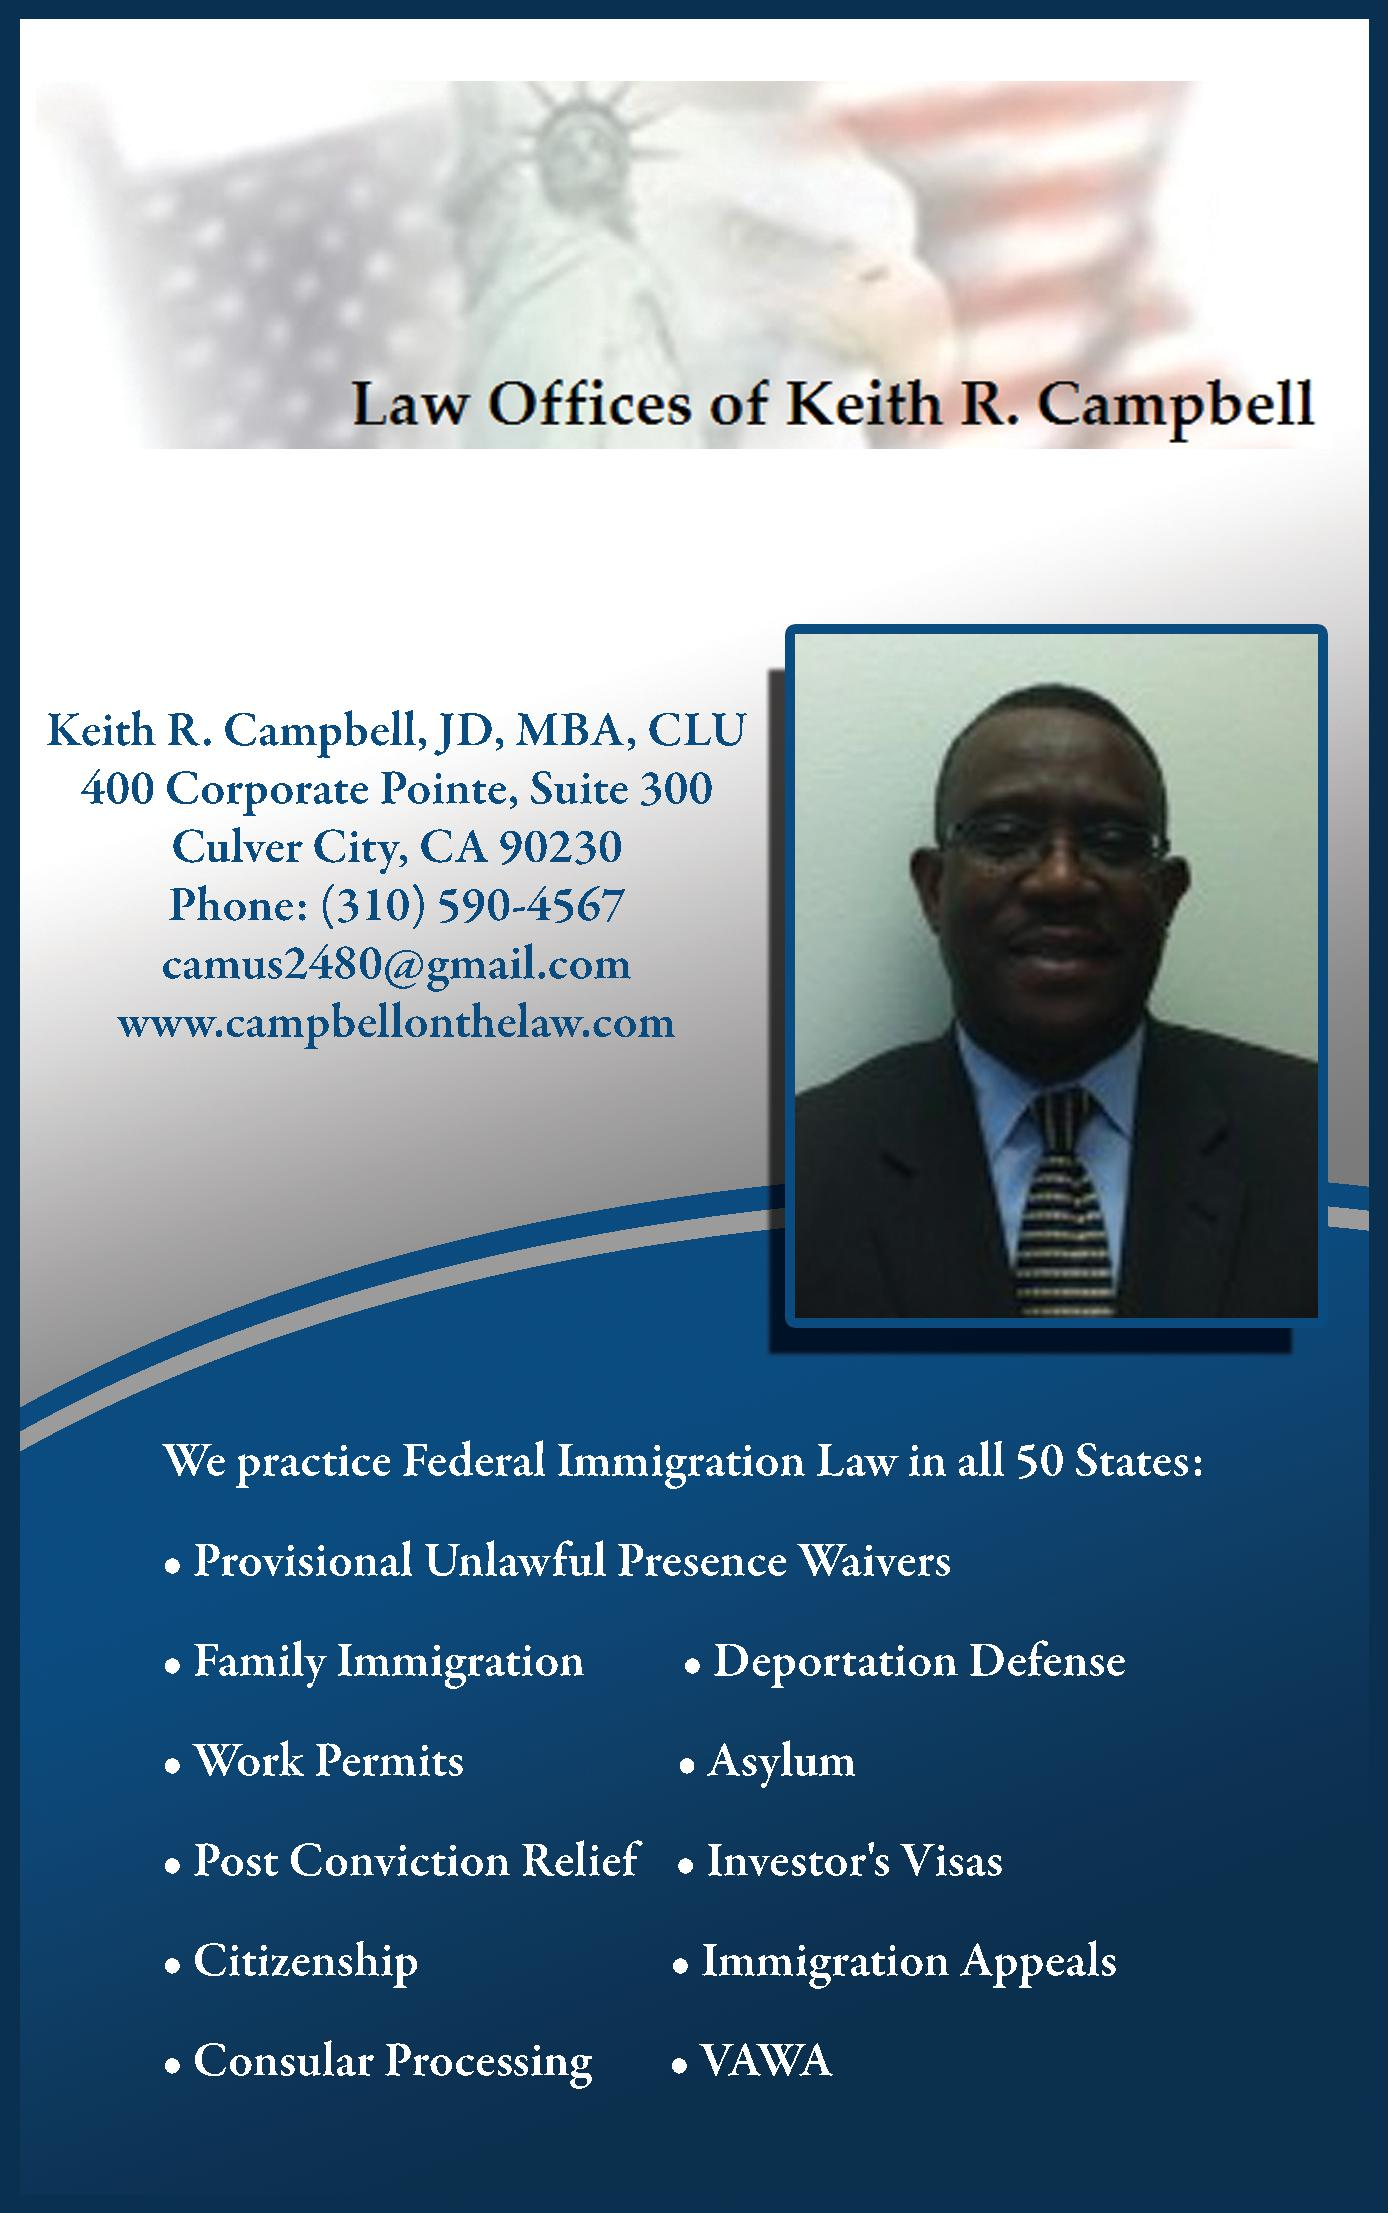 Law Offices of Keith R. Campbell